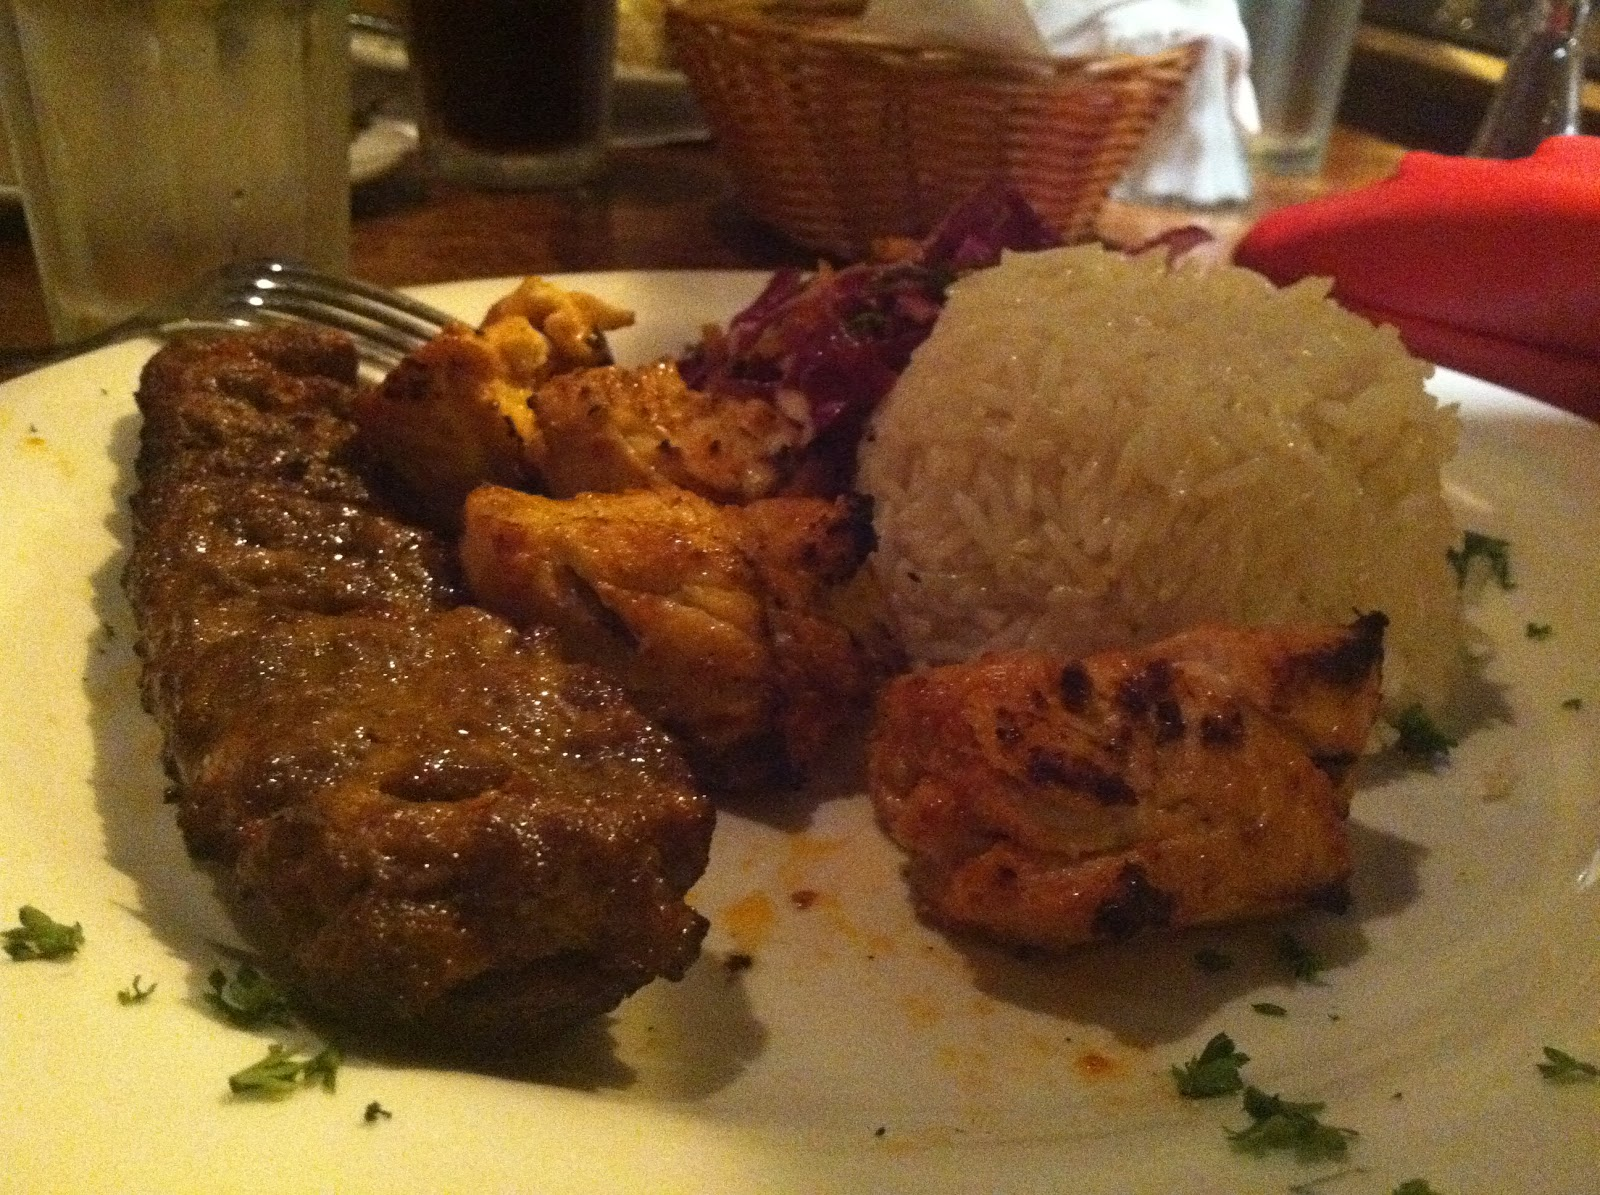 Lamb and chicken platter from alaturka turkish cuisine for Alaturka turkish cuisine